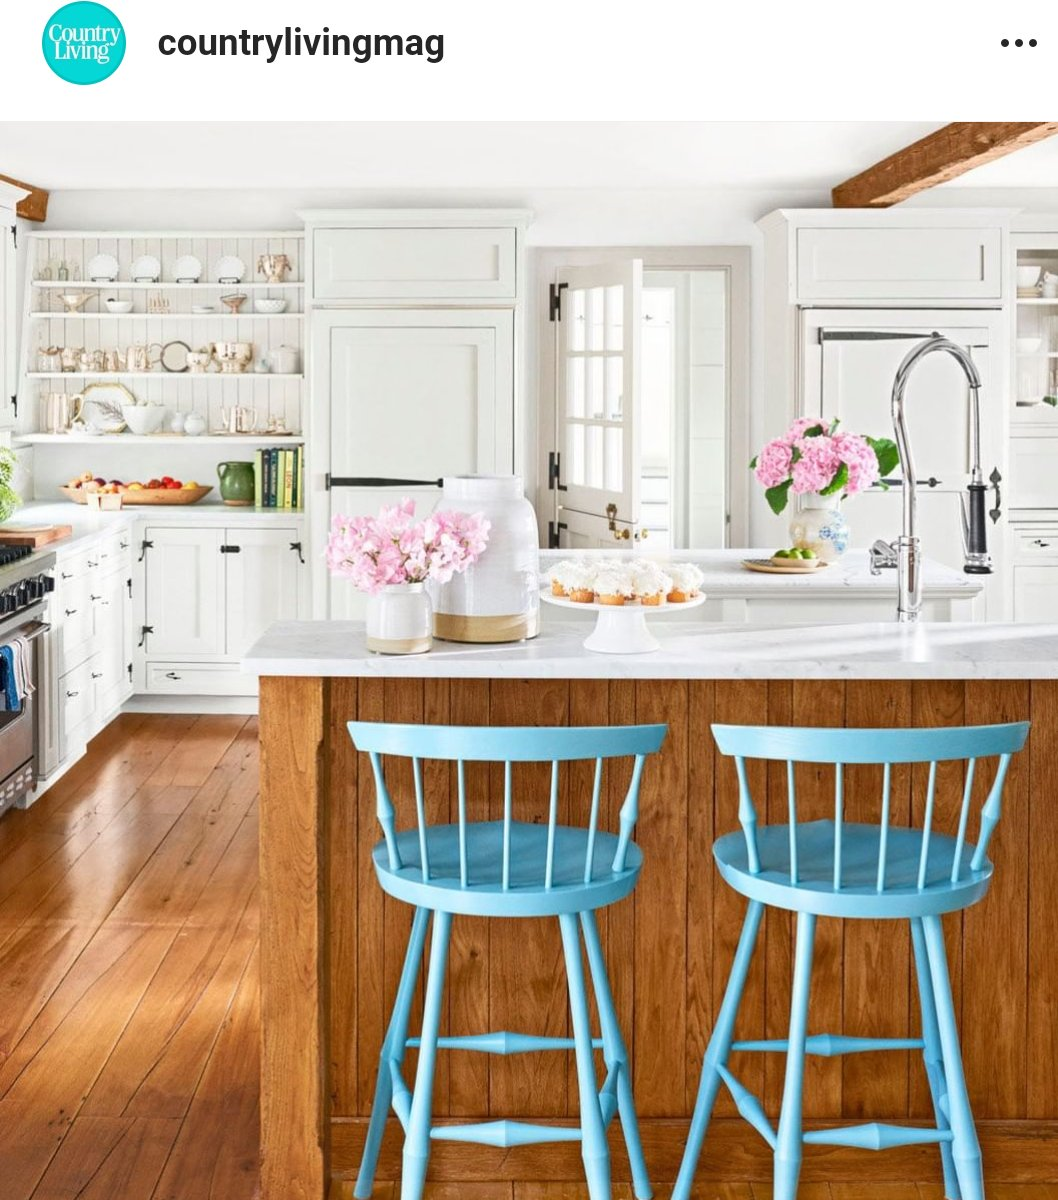 Like this little pop of color in the #kitchen. #decor #kitchen #diypic.twitter.com/BB96wIzcOq